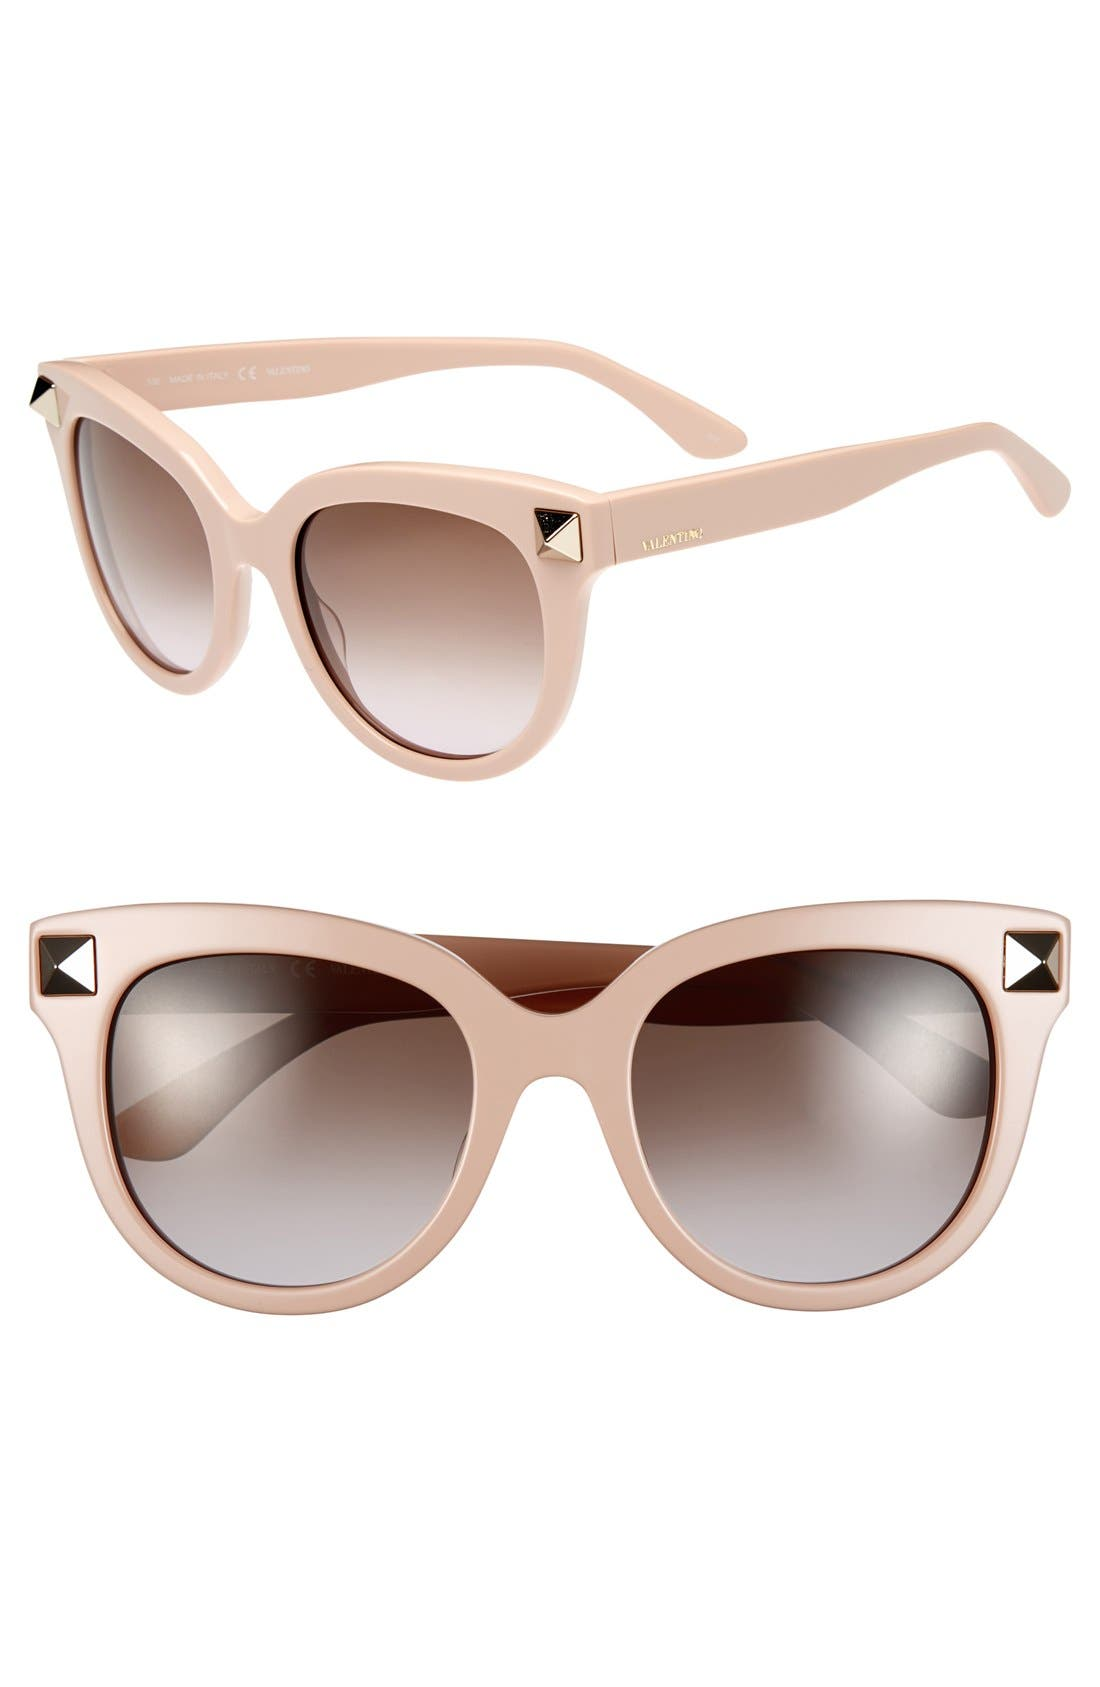 Main Image - Valentino 'Rockstud' 52mm Studded Sunglasses